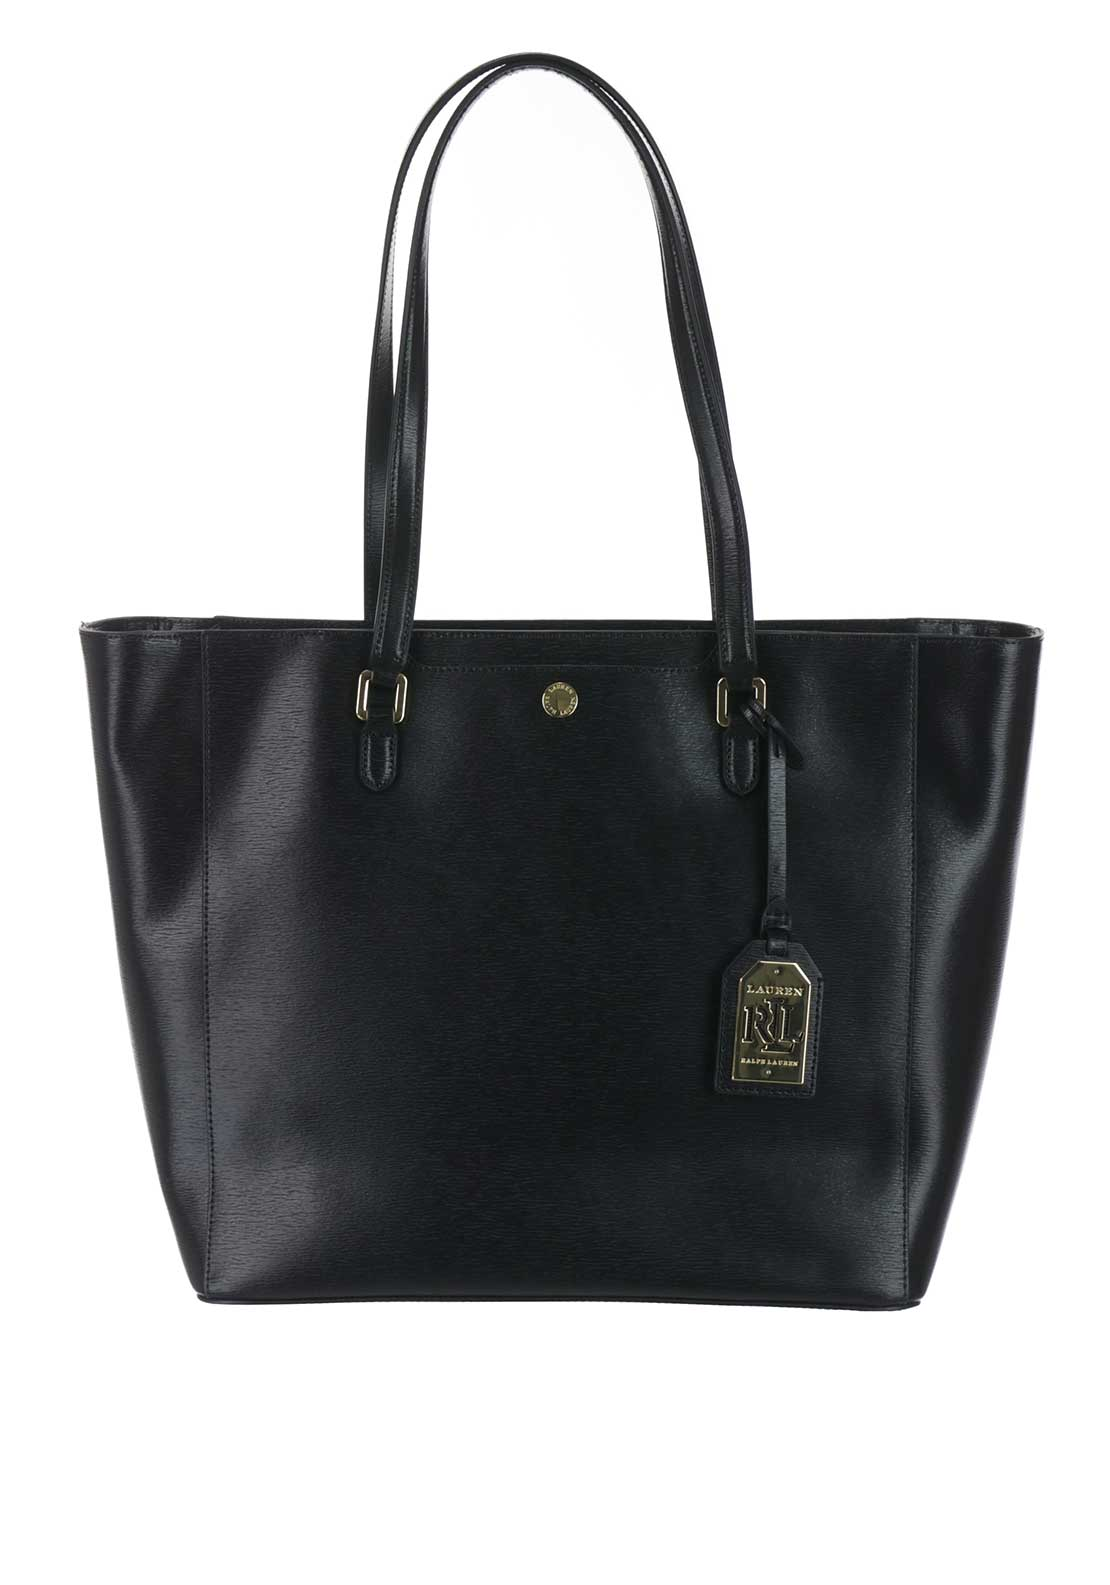 Lauren Ralph Lauren Leather Halee Tote Bag, Black